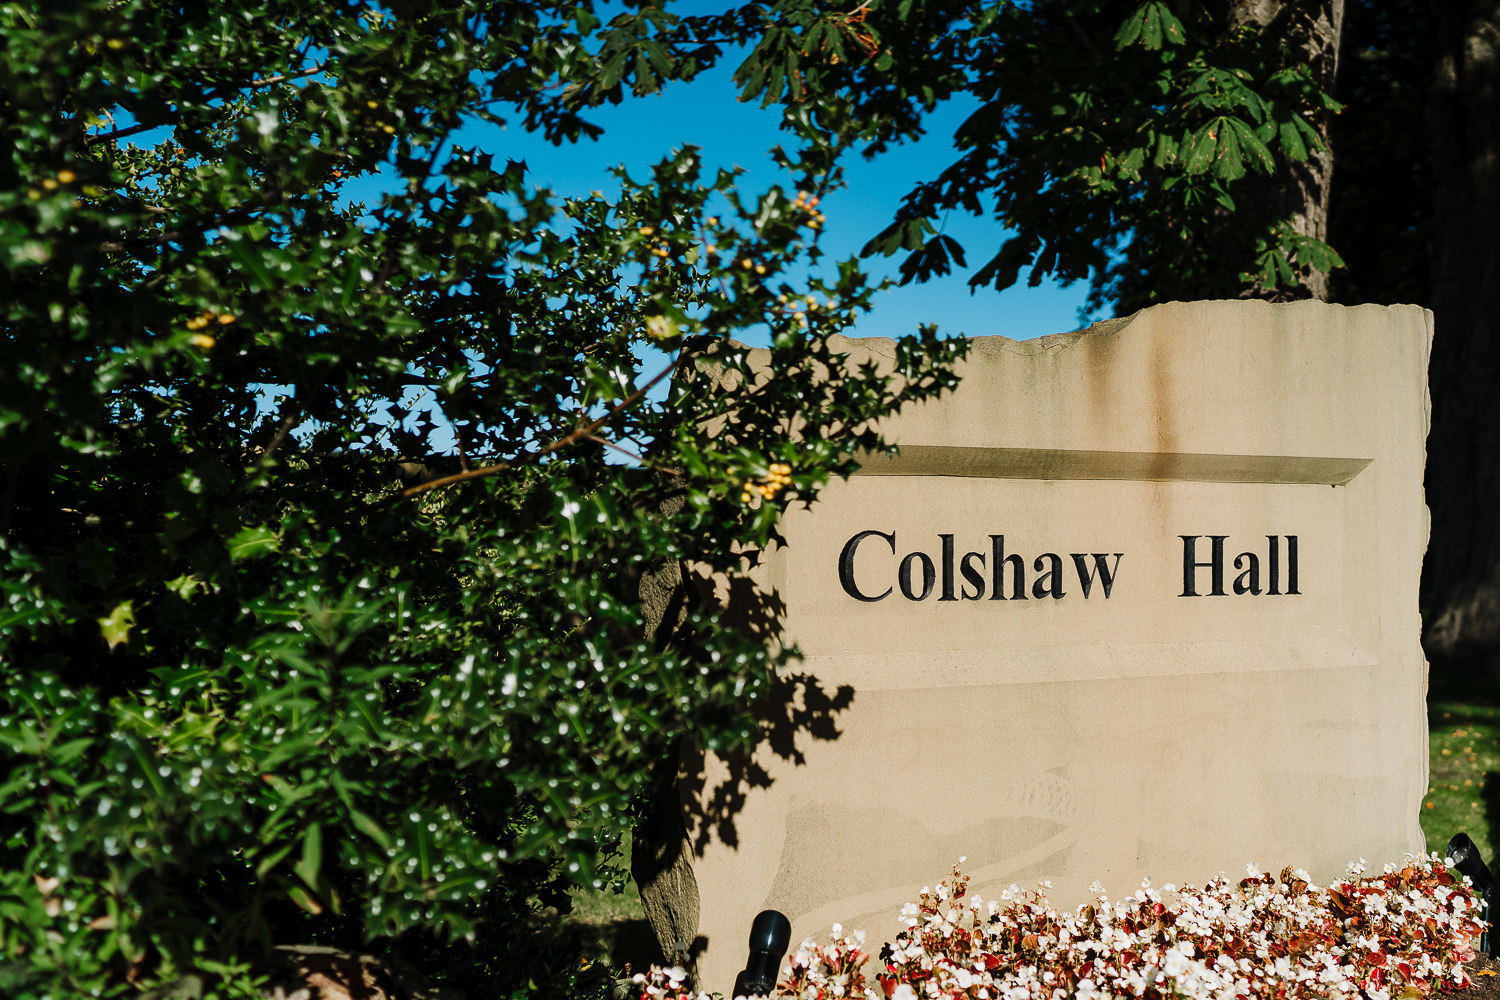 A photograph of the entrance to Colshaw Hall